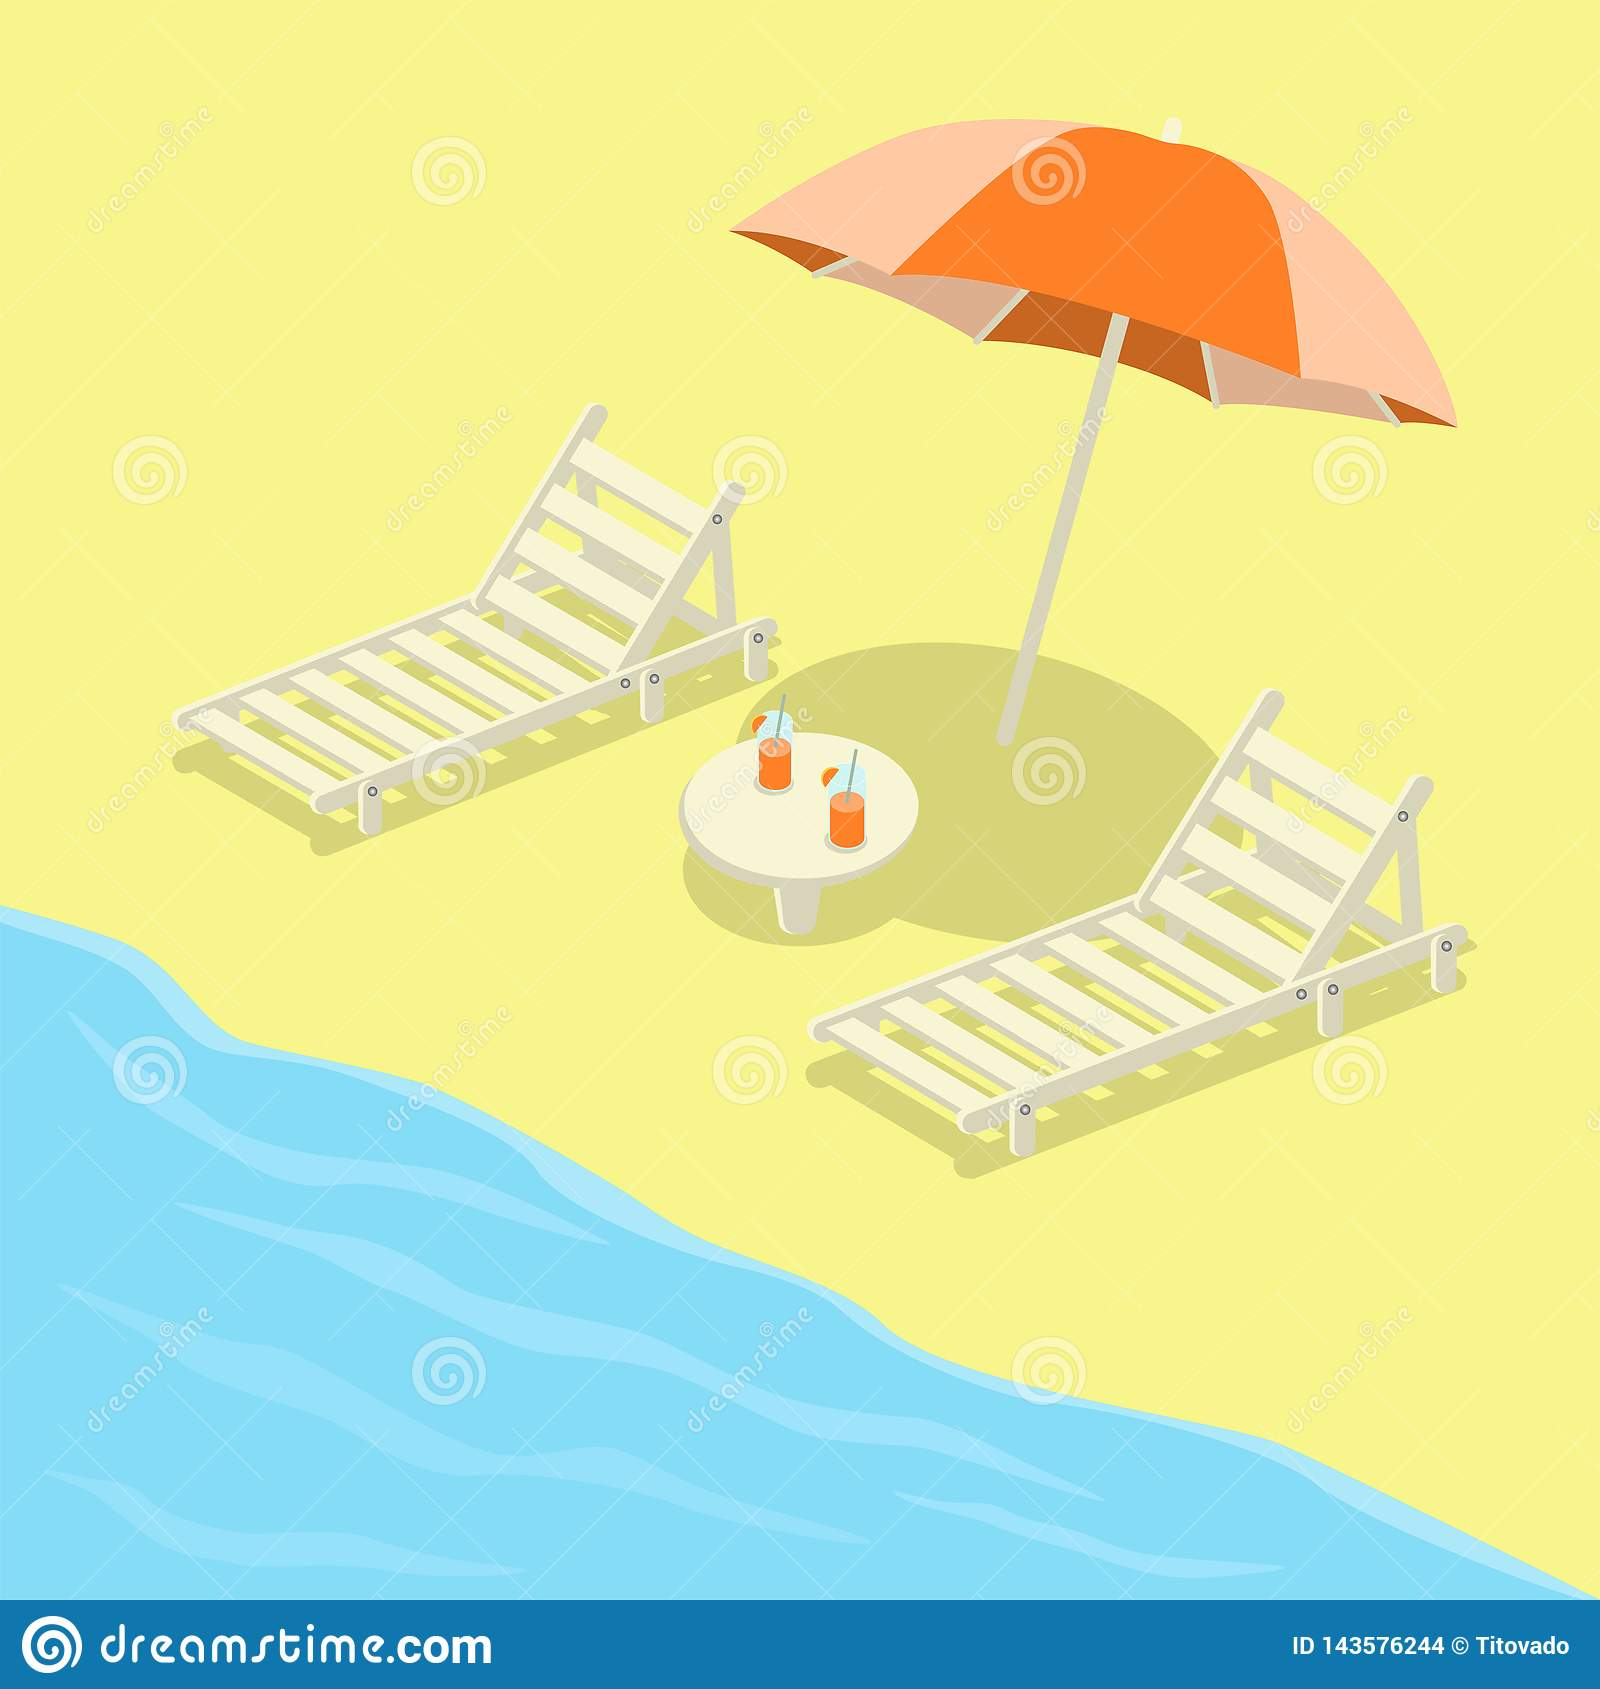 Deckchairs on the beach with umbrella